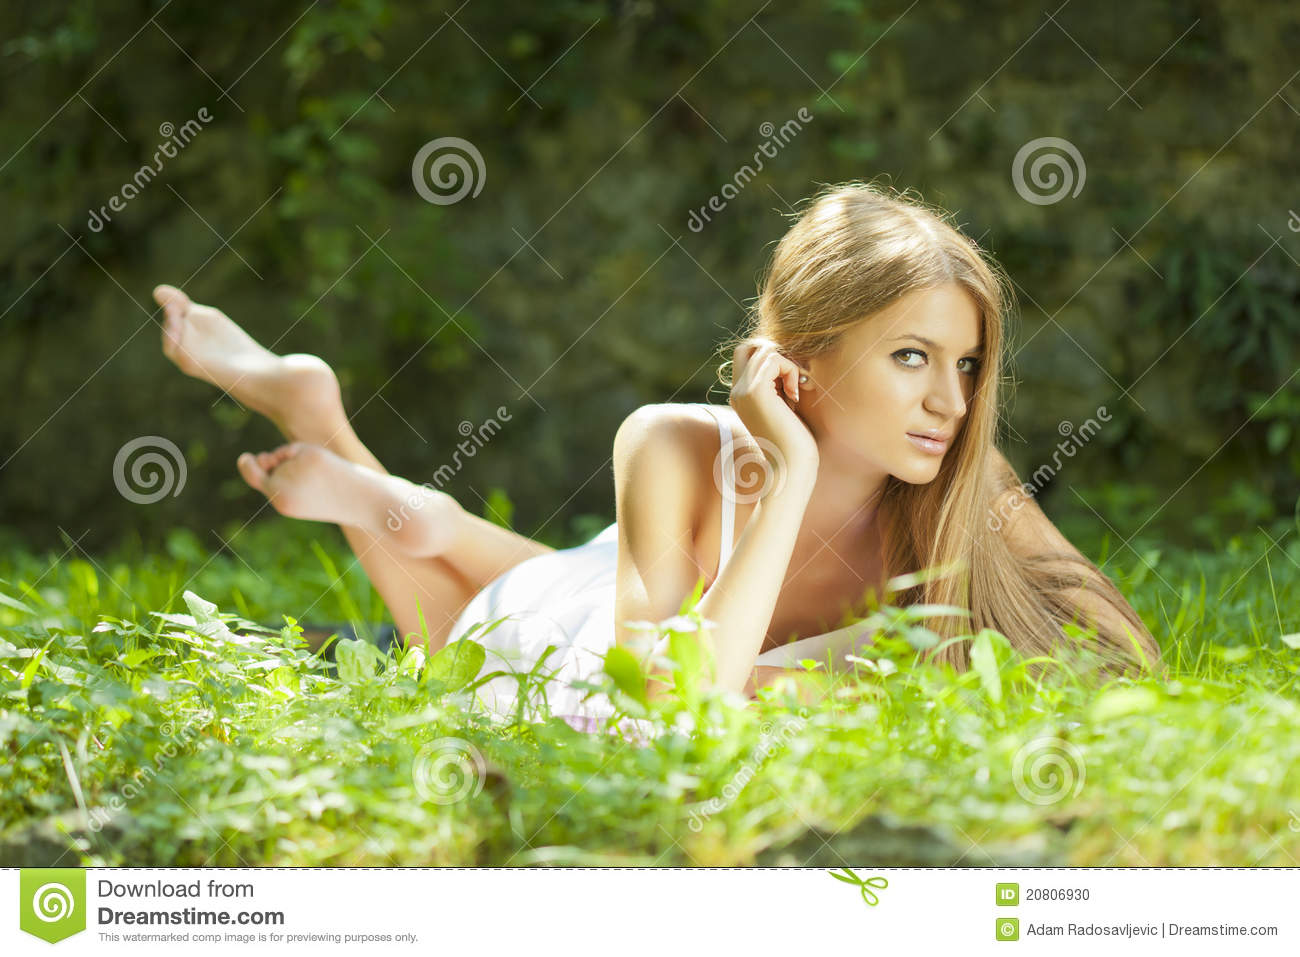 Brunette on grass stock photo. Image of forest, camera